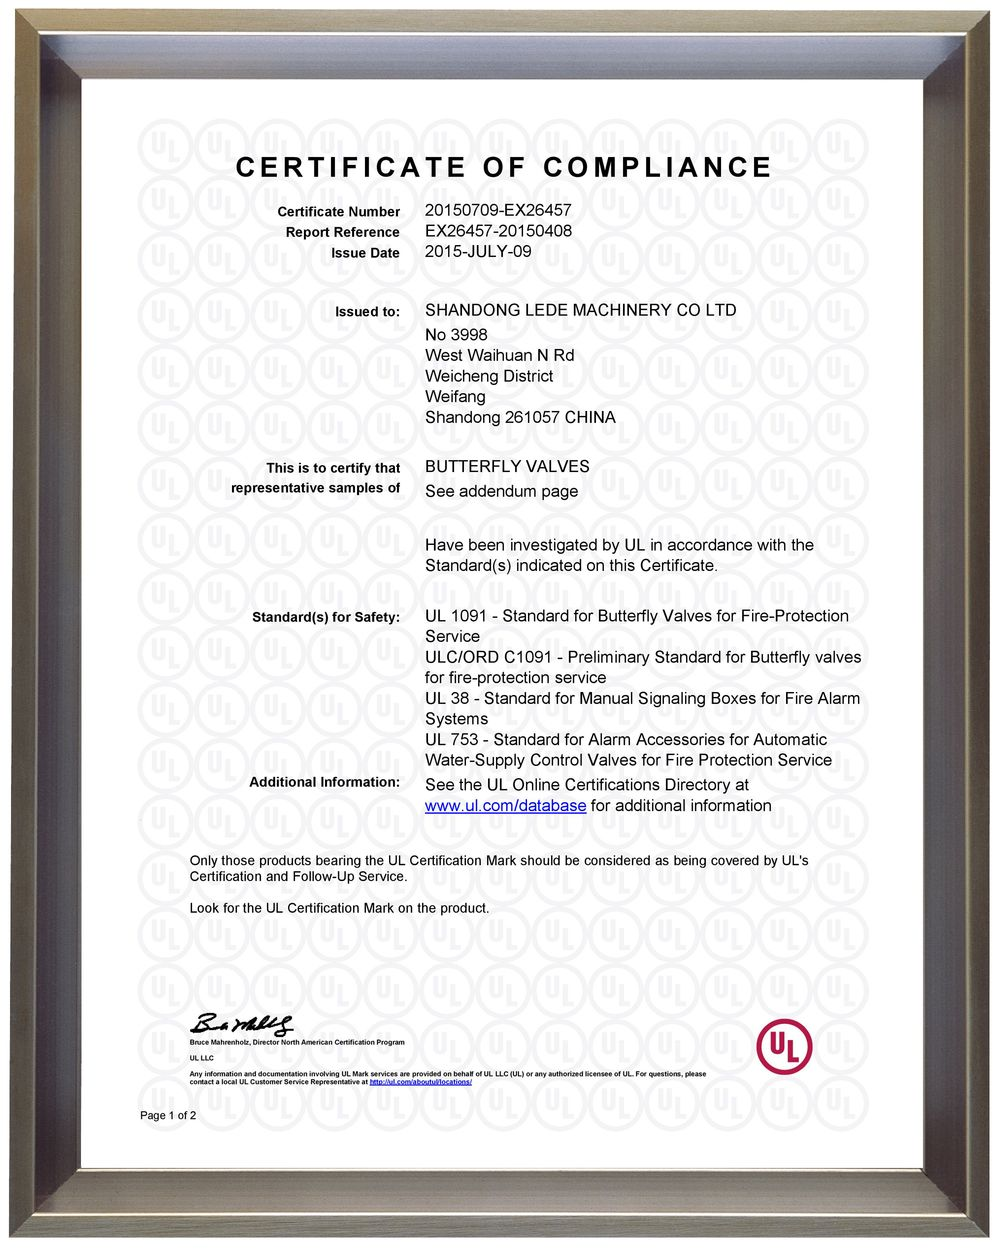 UL and CUL Sertificate (BUTTERFLY VALVES) 1